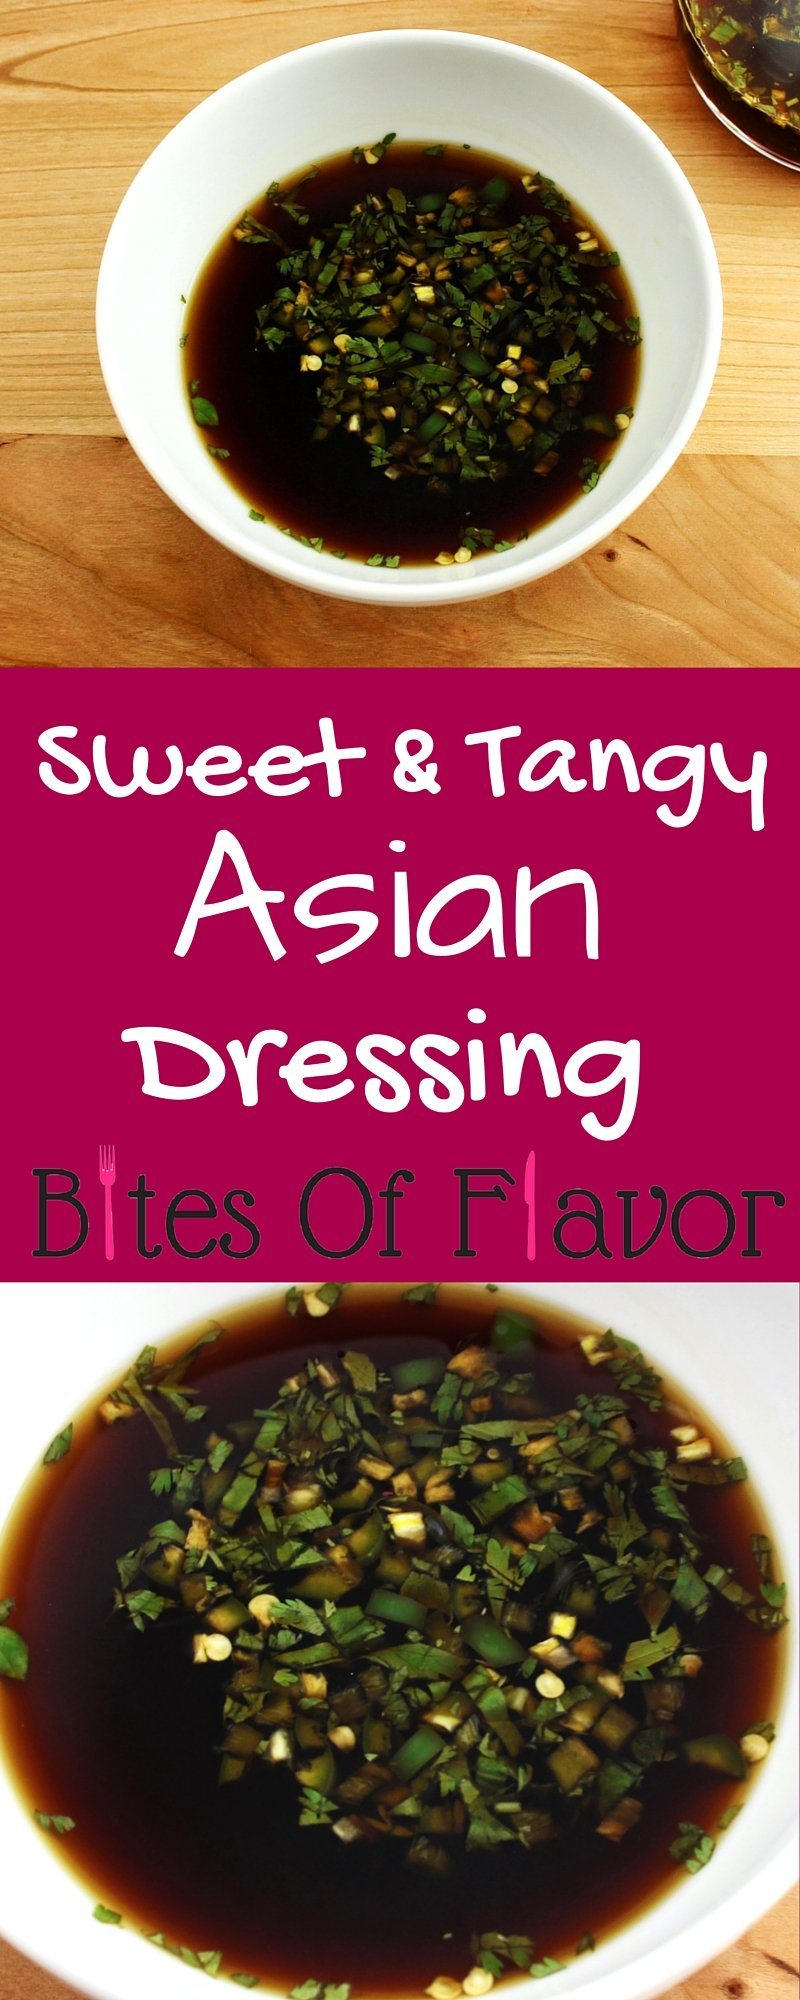 Sweet & Tangy Asian Dressing- Easy to make and great as a dressing or marinade. Fresh ingredients with no preservatives. Weight Watchers friendly recipe! www.bitesofflavor.com